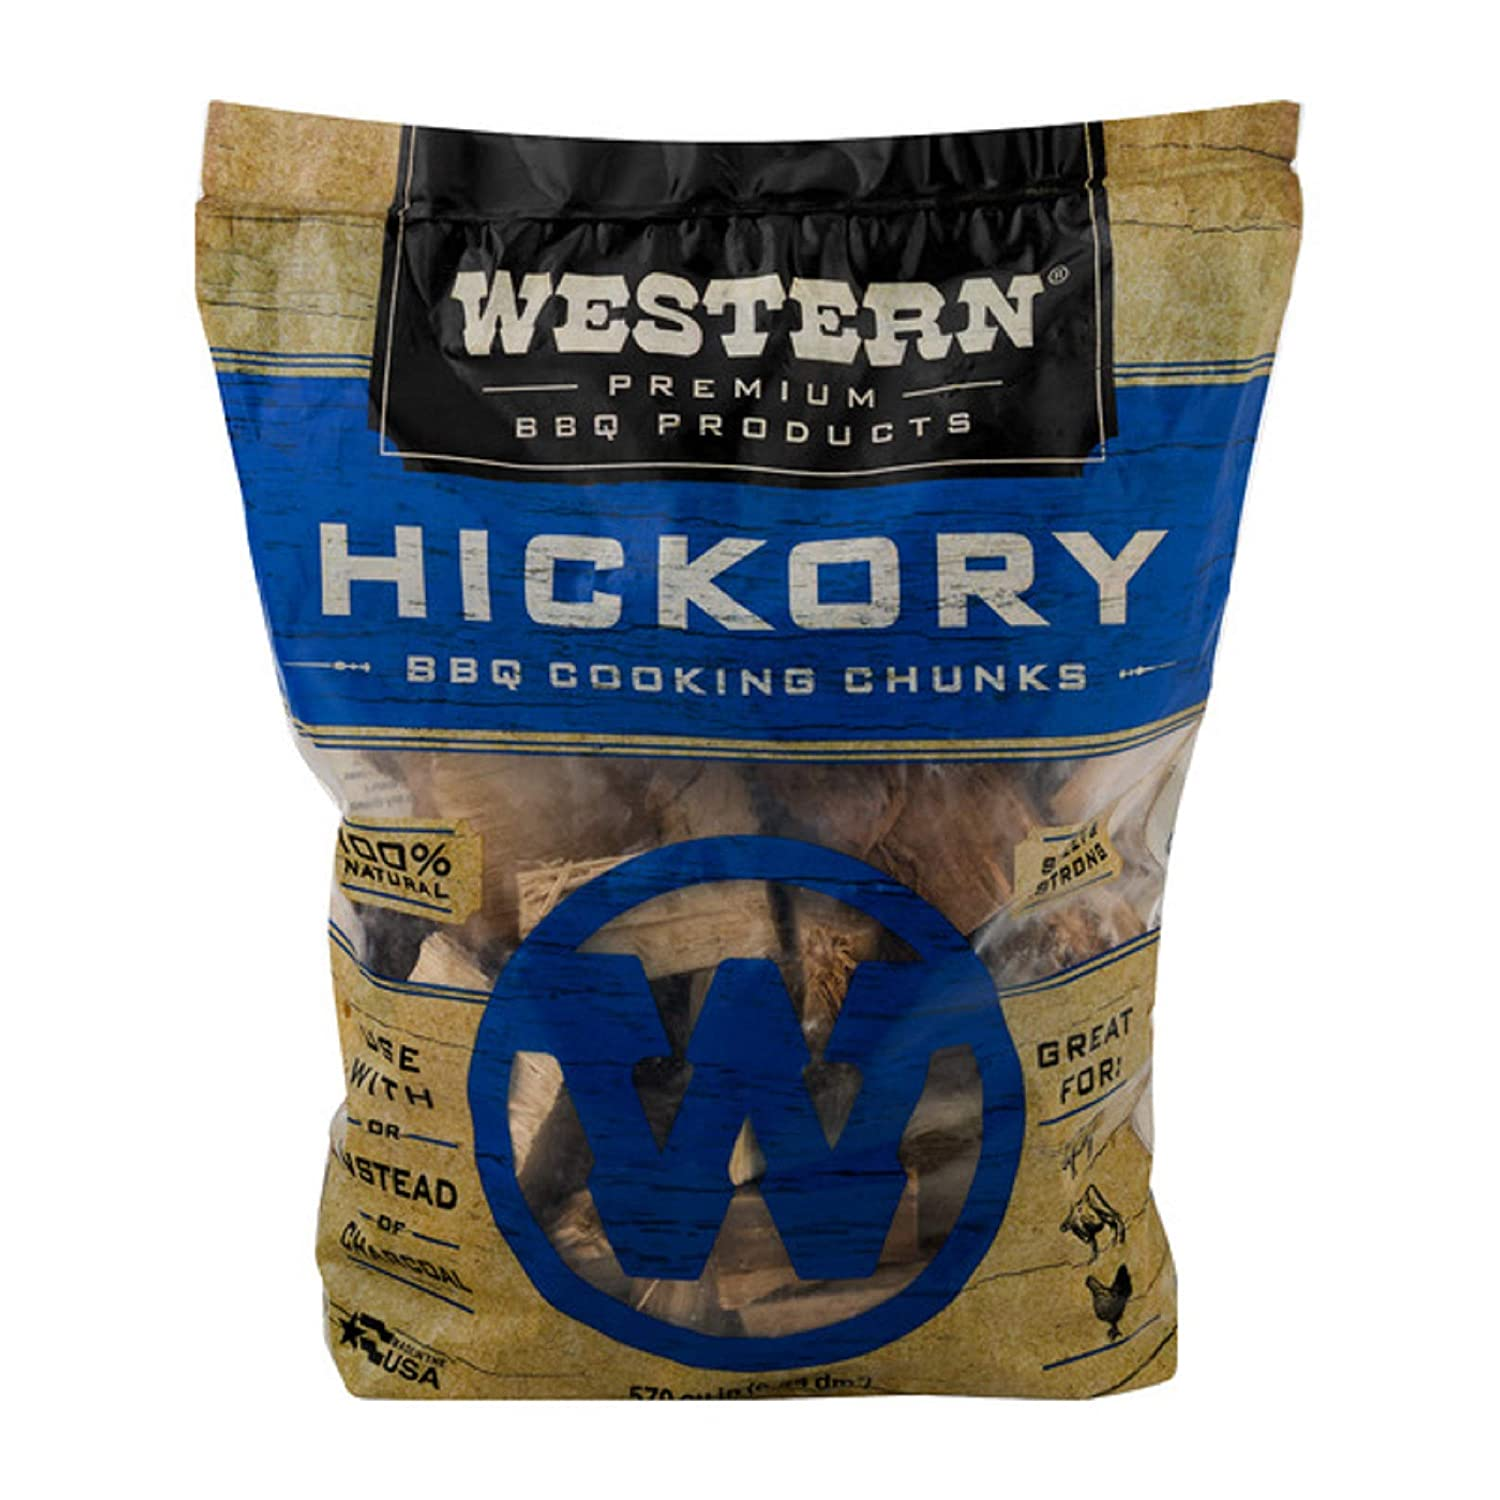 Western Premium BBQ Products Hickory BBQ Cooking Chunks, 570 cu in